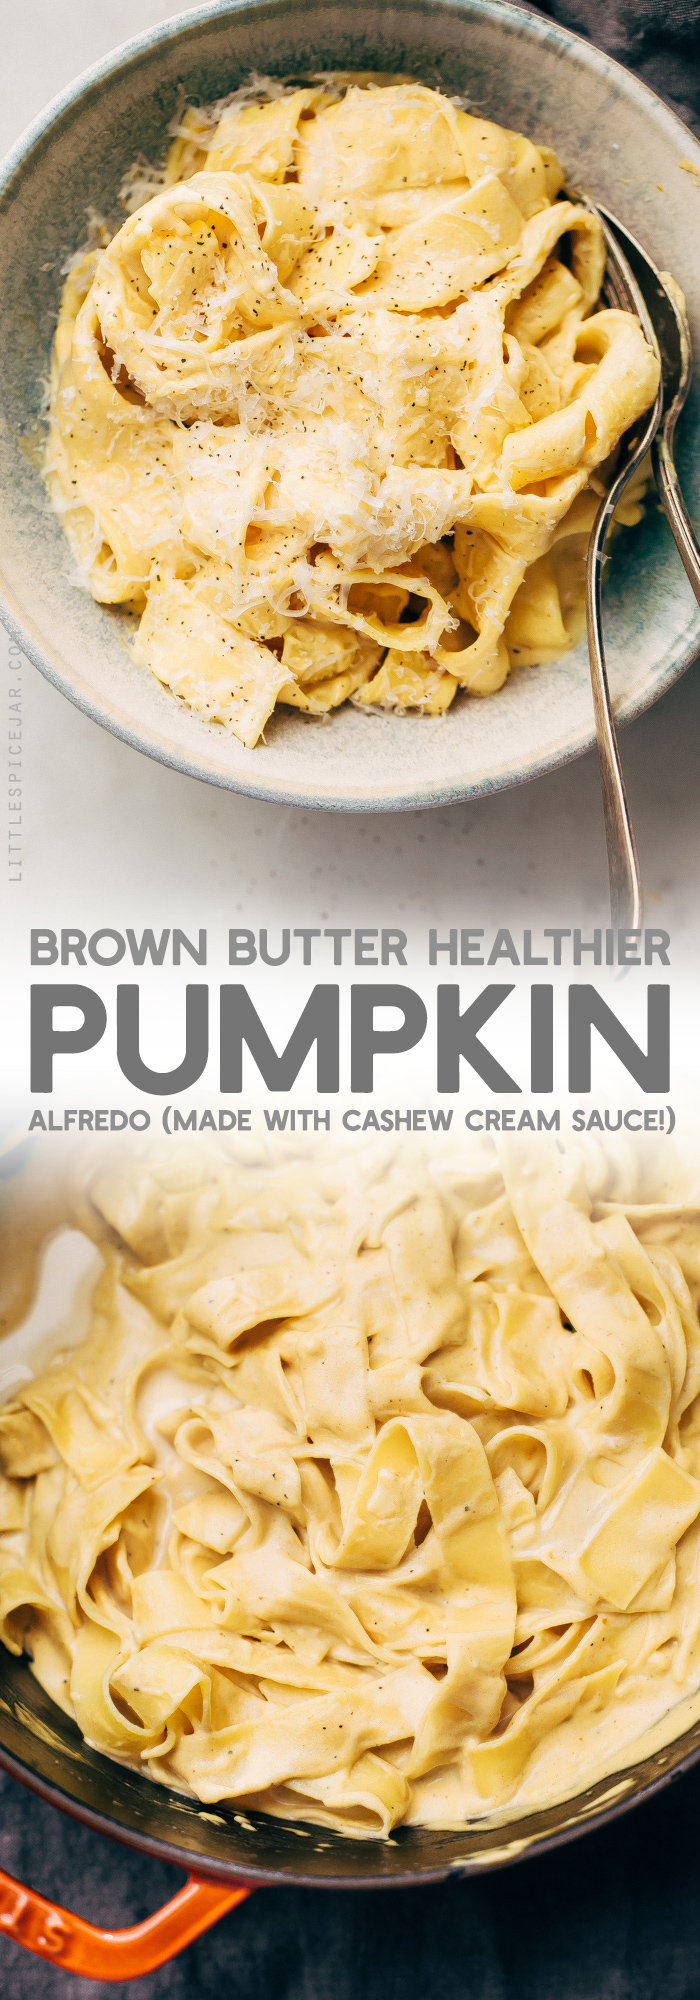 Sage Brown Butter Healthier Pumpkin Alfredo - a homemade pumpkin alfredo with a cashew cream sauce! So good as a side or as a main dish! #healthierpumpkinalfredo #pumpkin #pumpkinalfredo #cashewcreamsauce | Littlespicejar.com